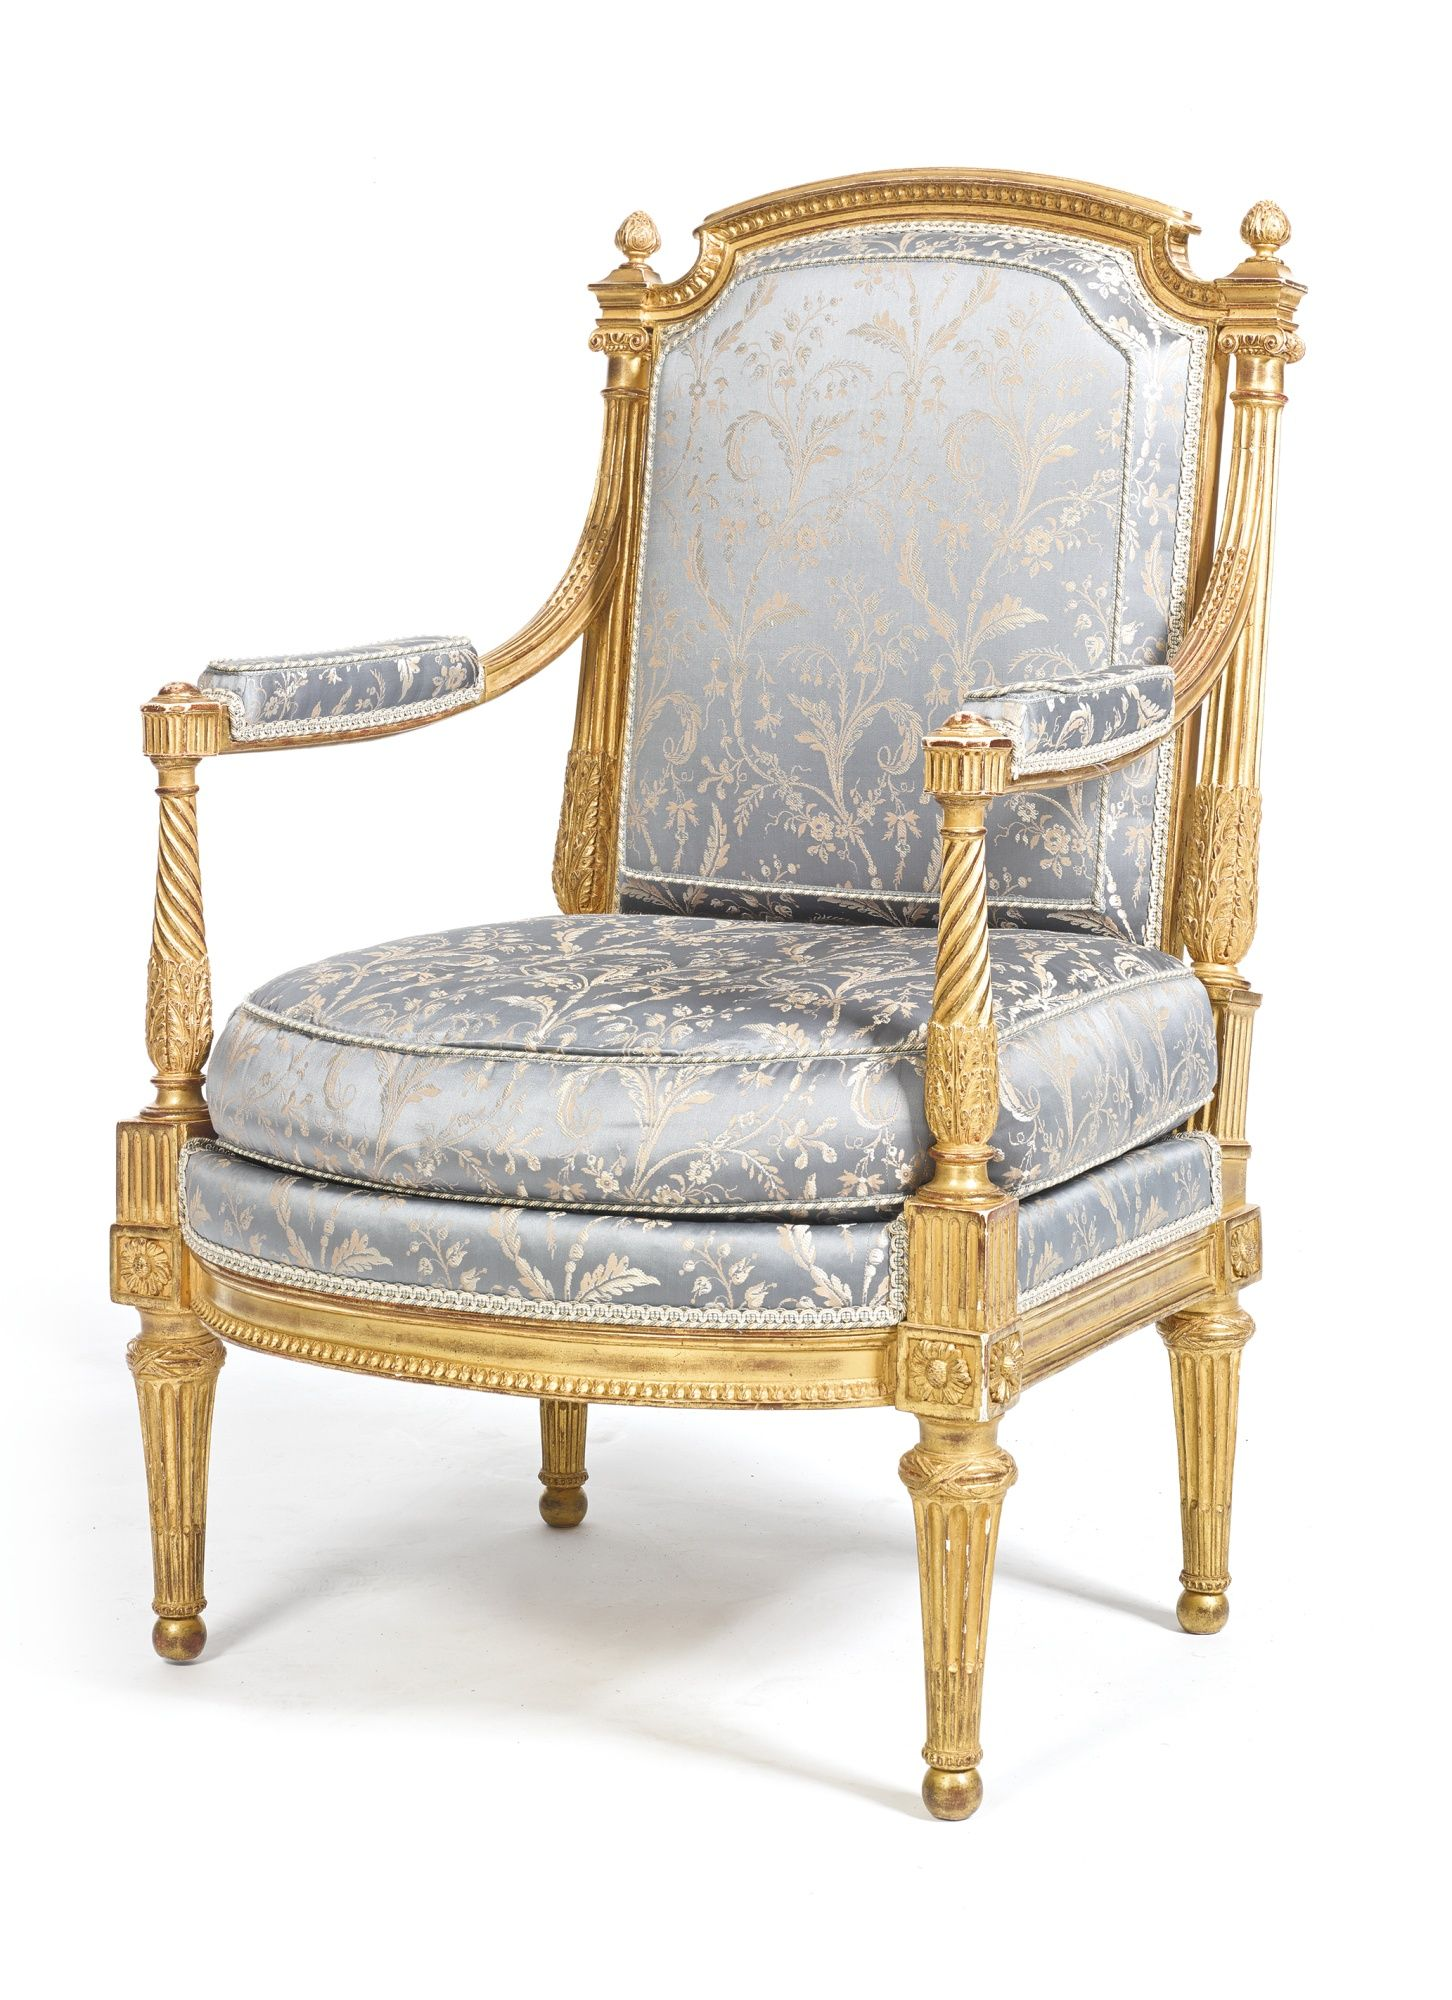 Fauteuils Customisés A Louis Xvi Carved Giltwood Fauteuil Attributed To Georges